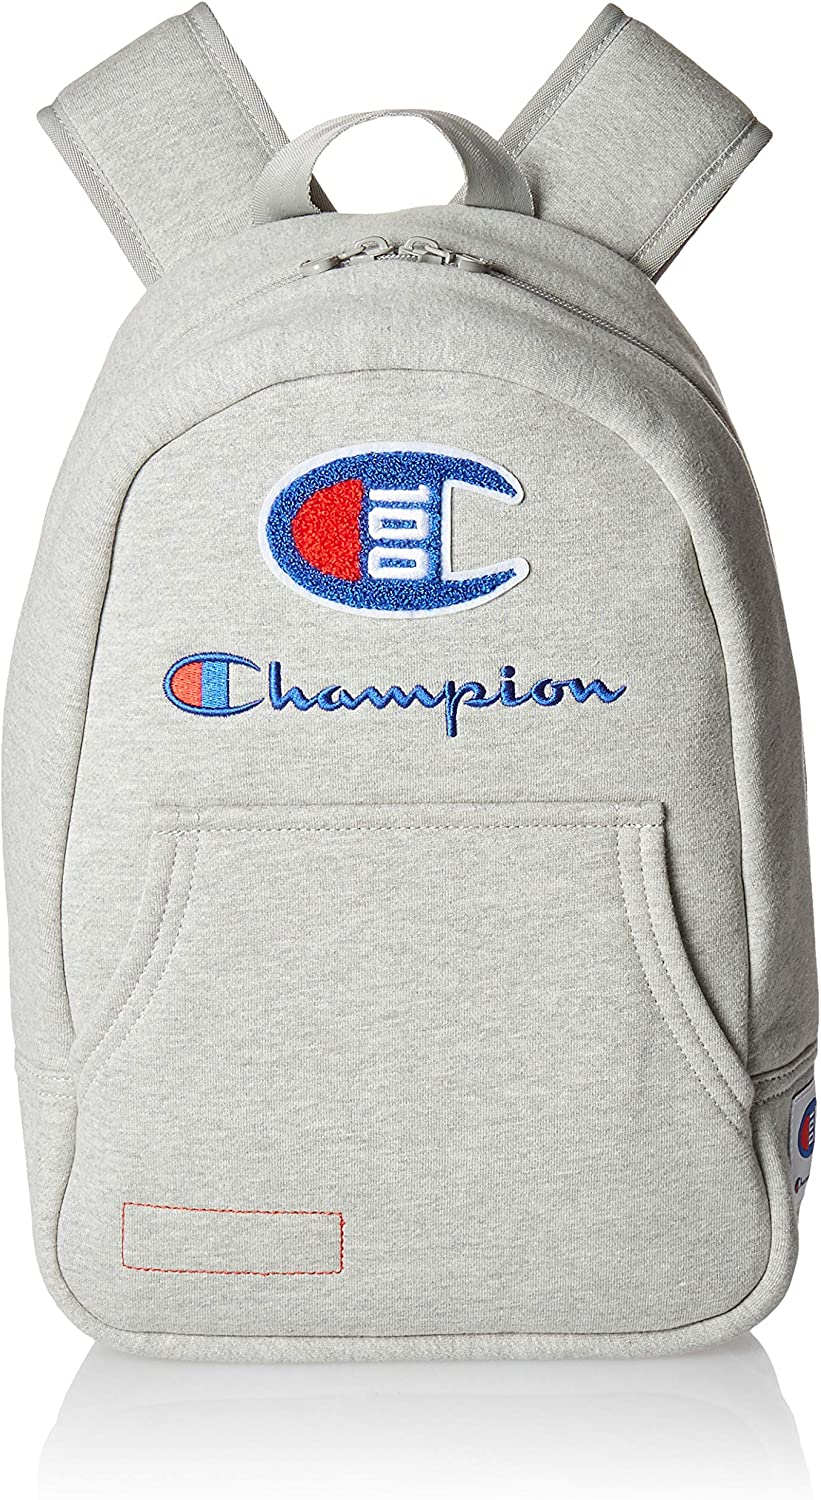 Champion Men's 101 Year Pullover Backpack, Medium Gray, One Size